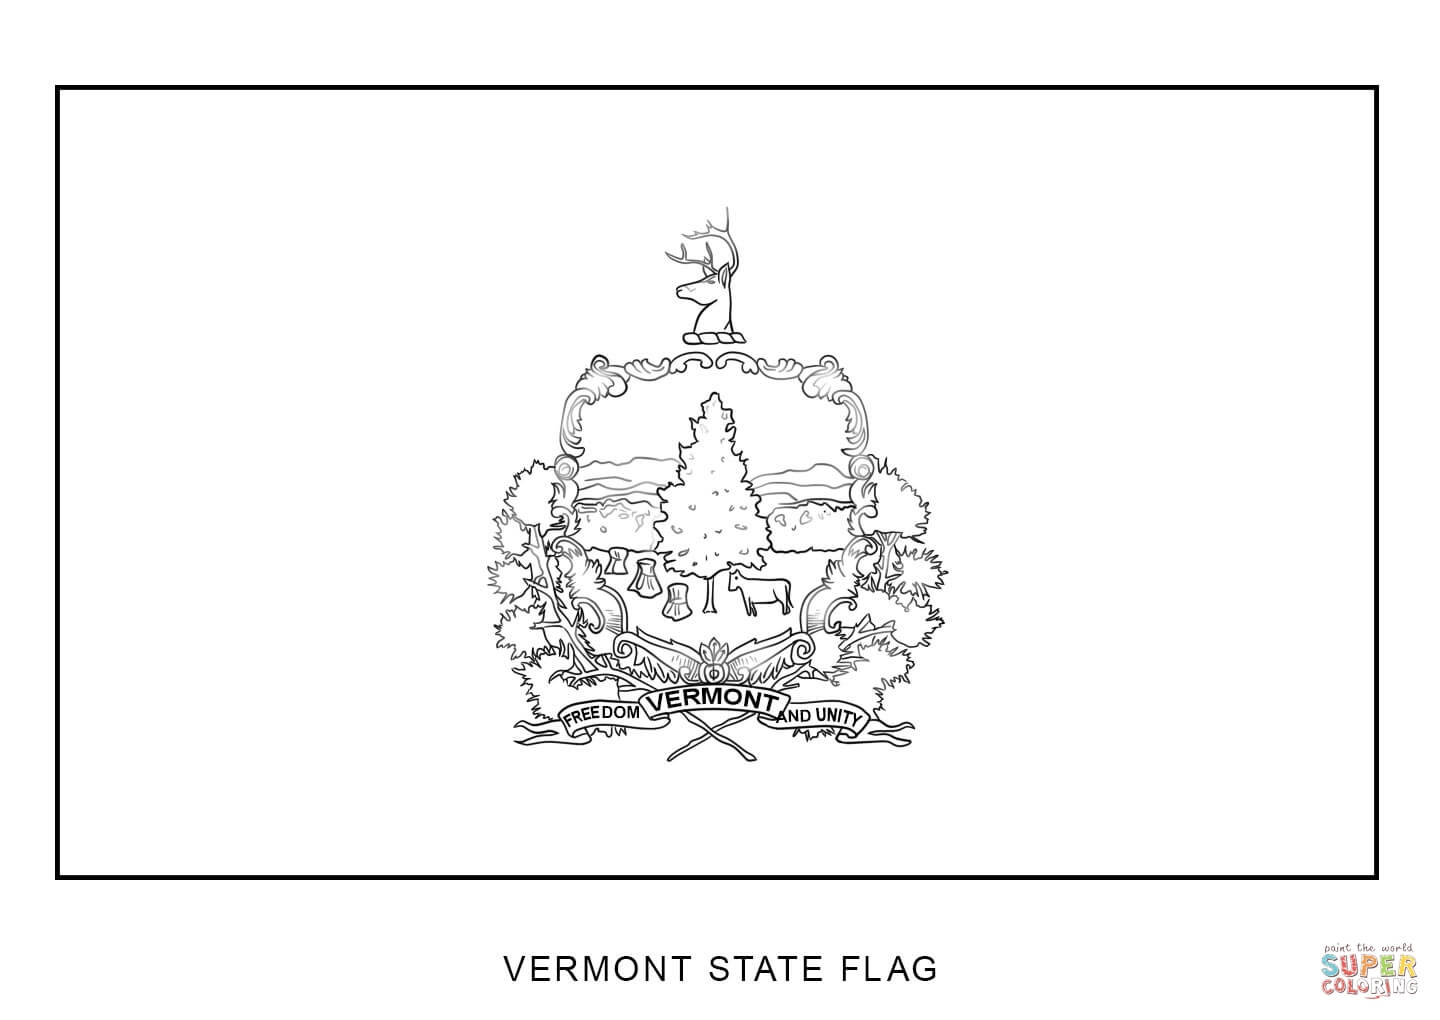 vermont state flag coloring page vermont state flag coloring page vermont page coloring state flag